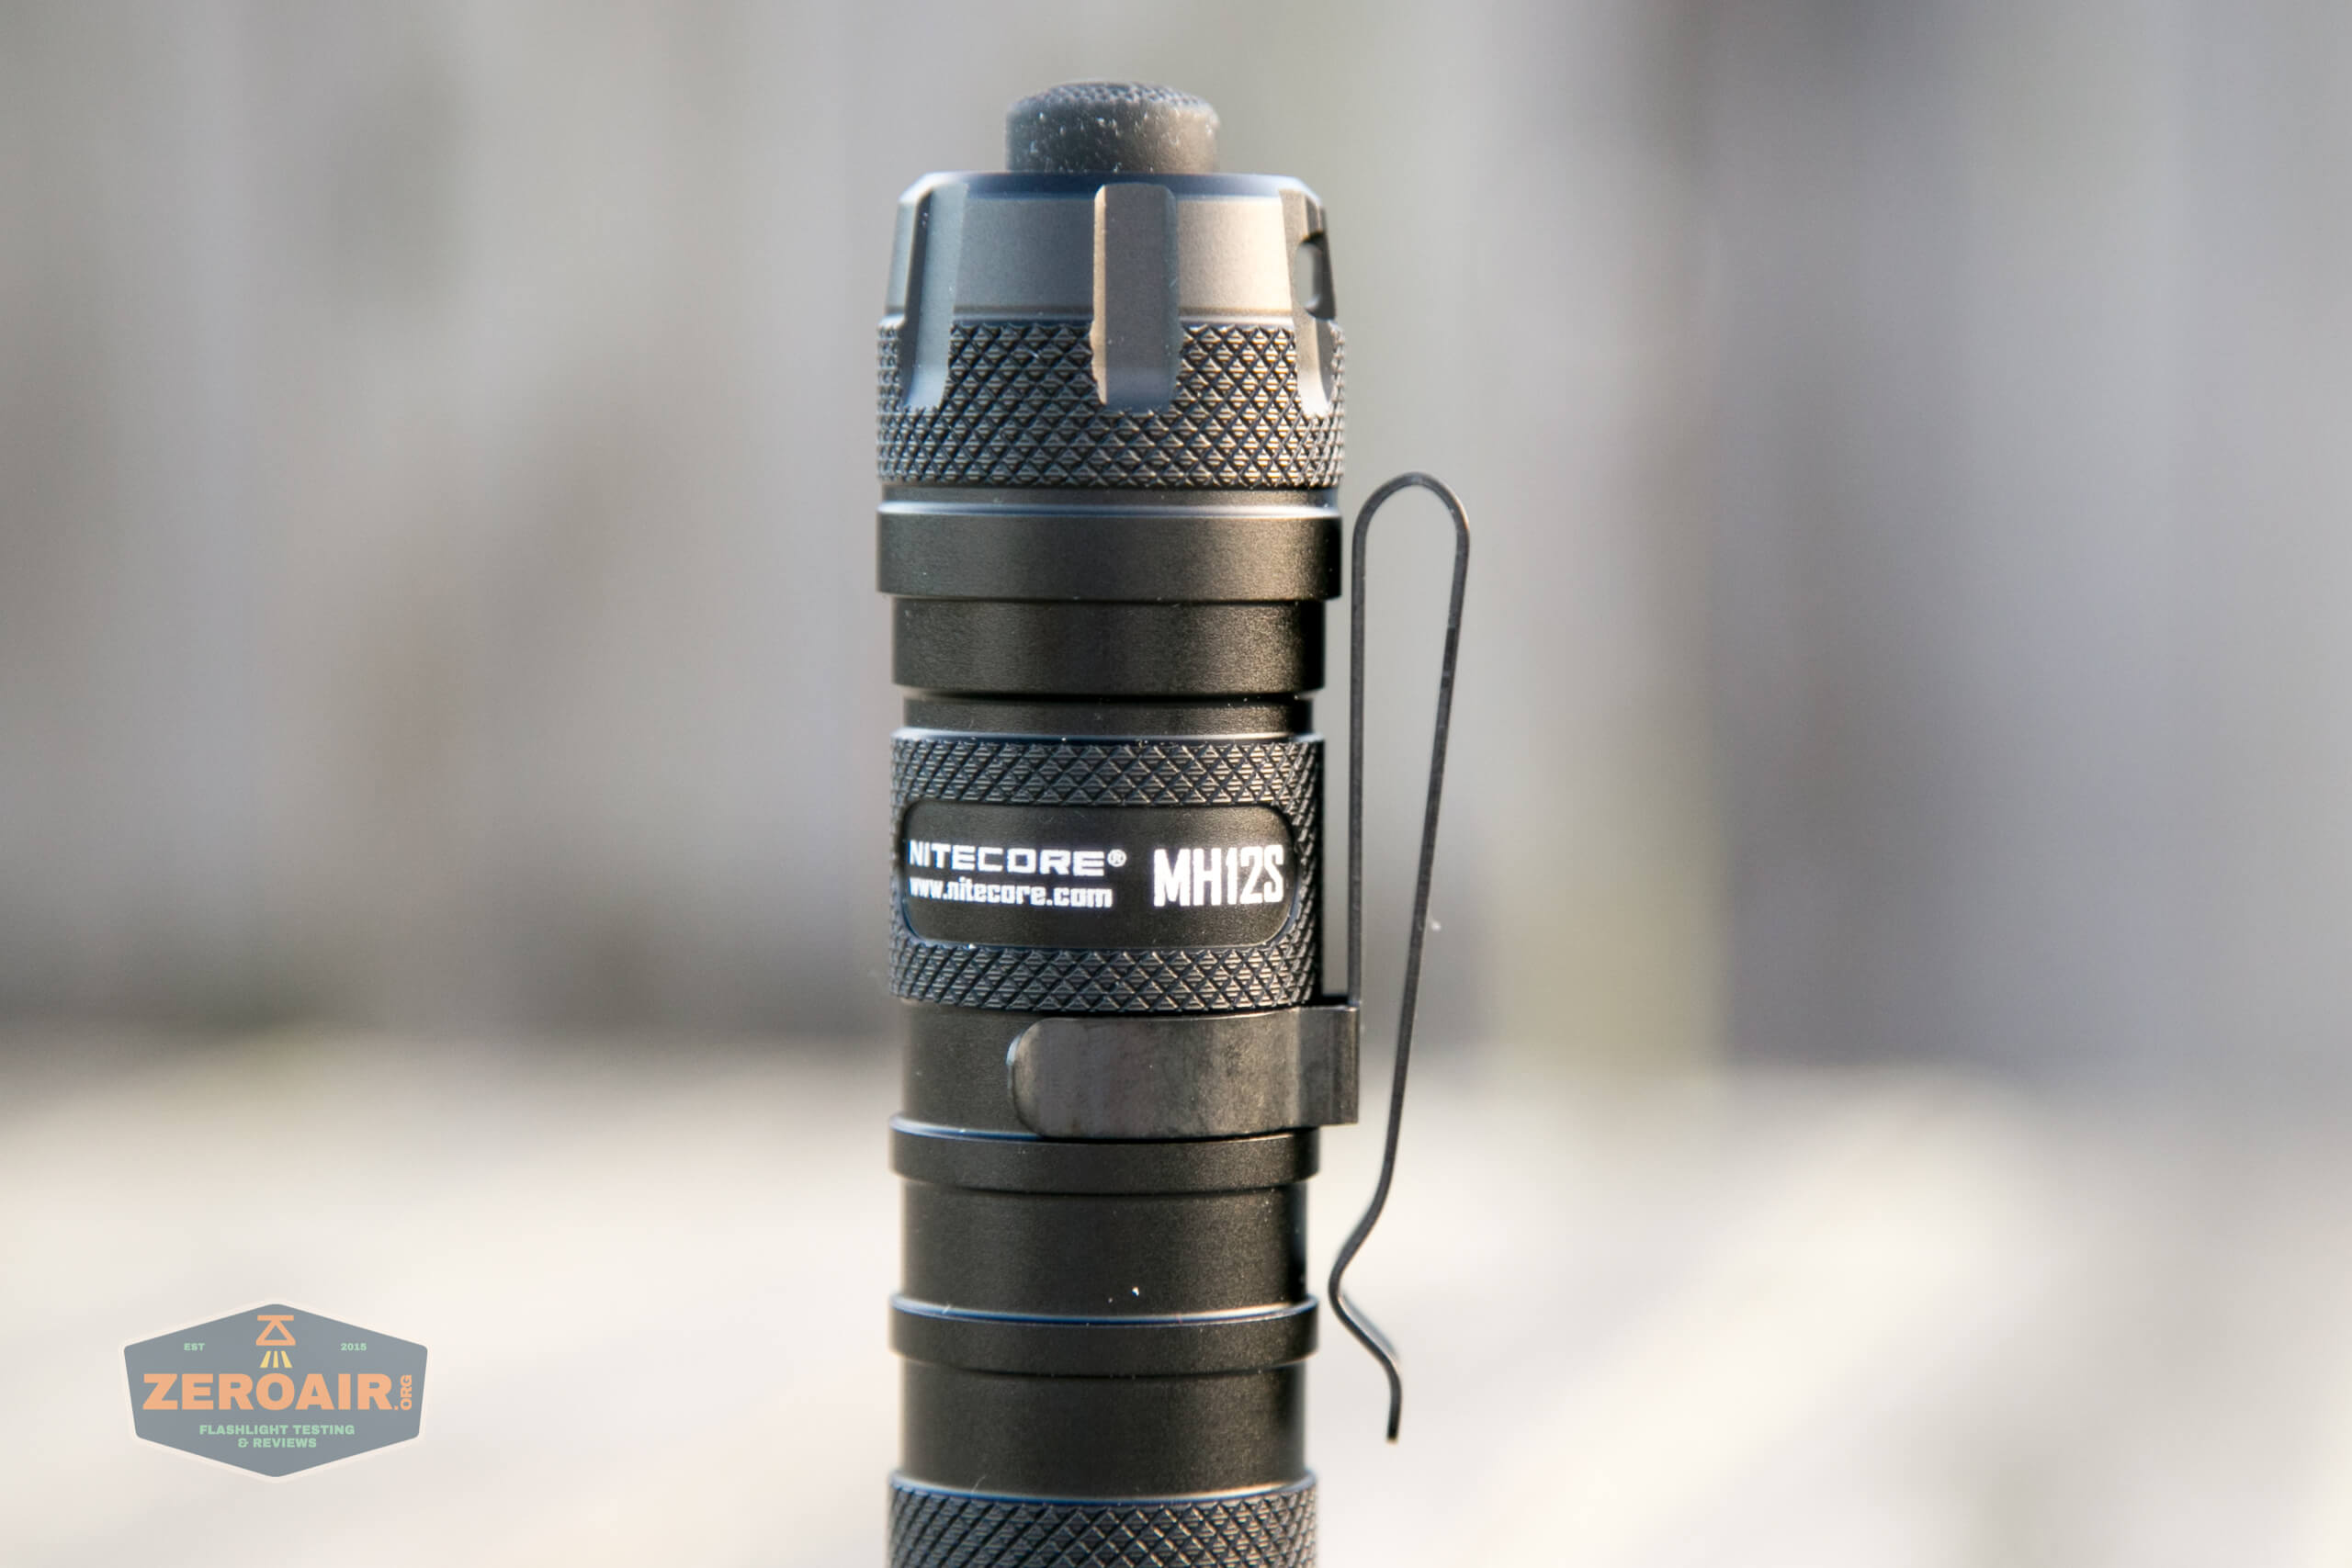 nitecore mh12s tactical flashlights pocket clip on end